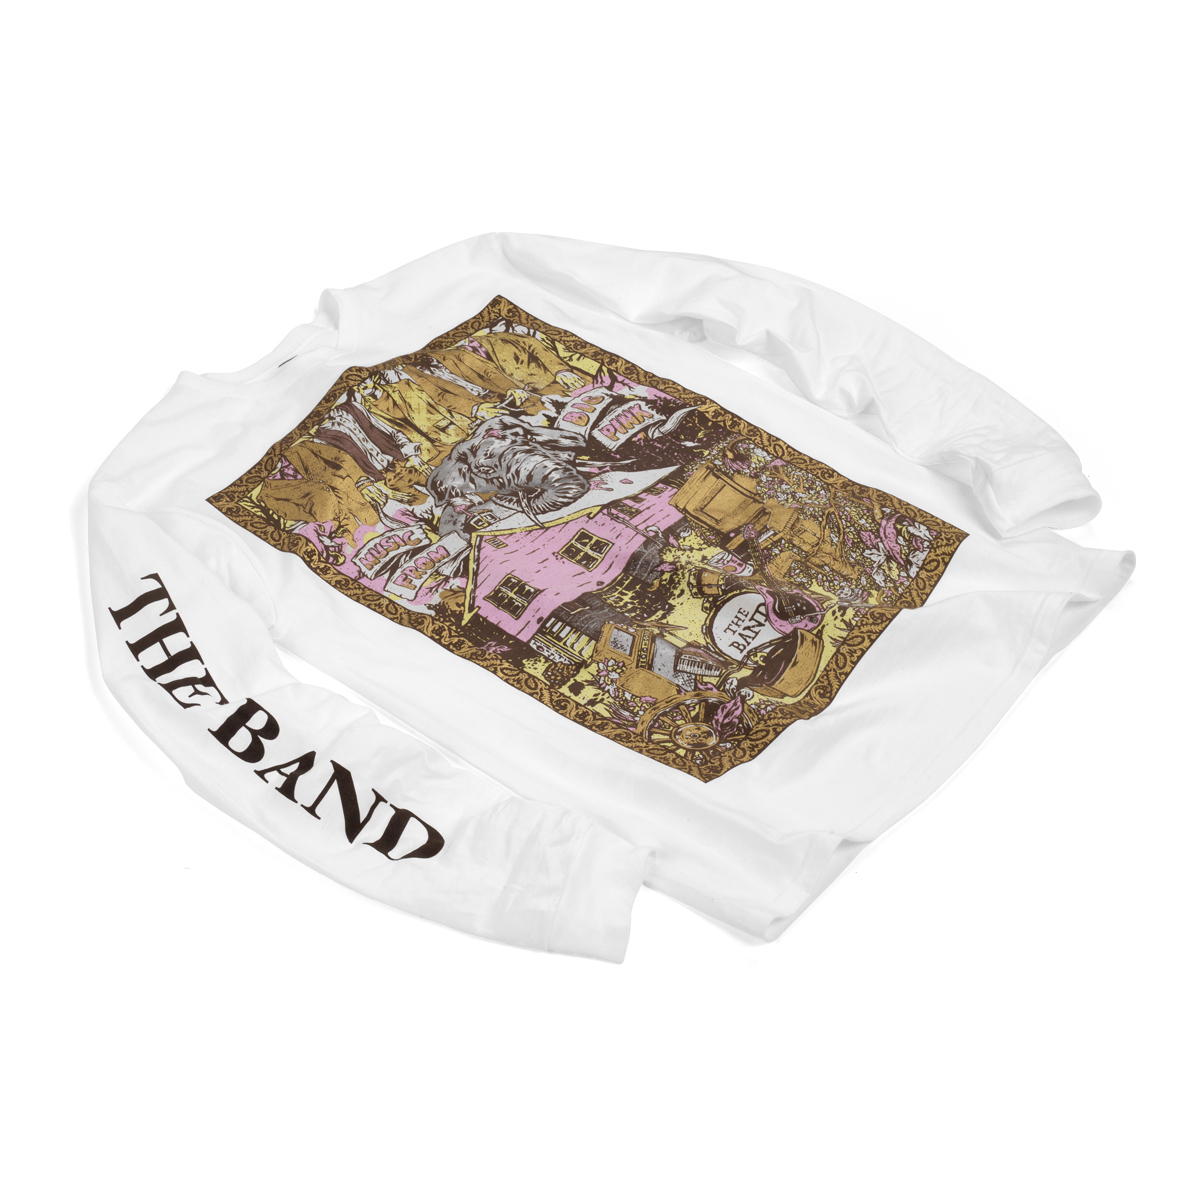 The Band Music From The Big Pink White Longsleeve T-shirt